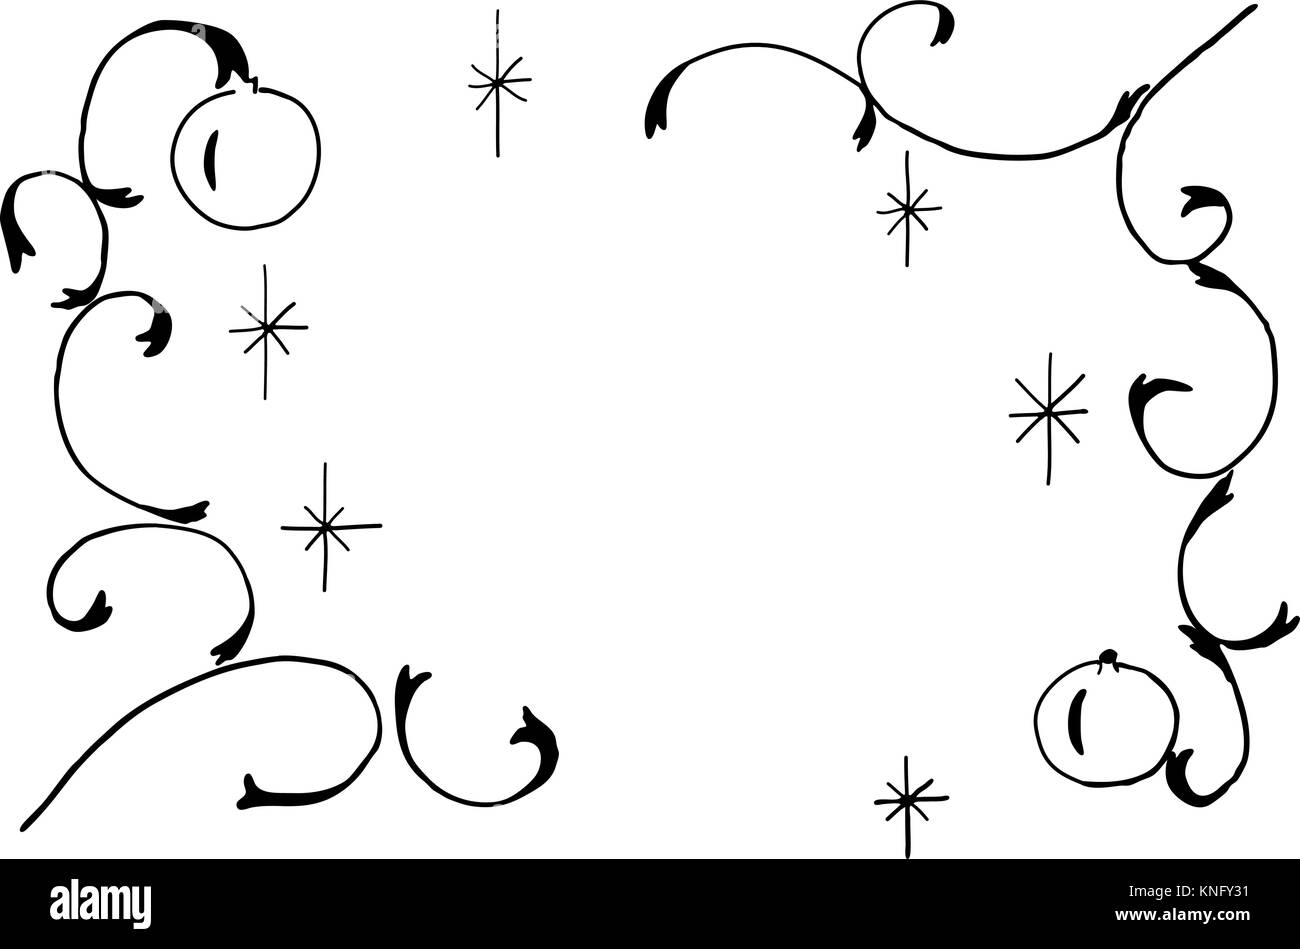 Drawings Of Christmas Decorations.Vector Drawing Of Christmas Decorations Stock Vector Art